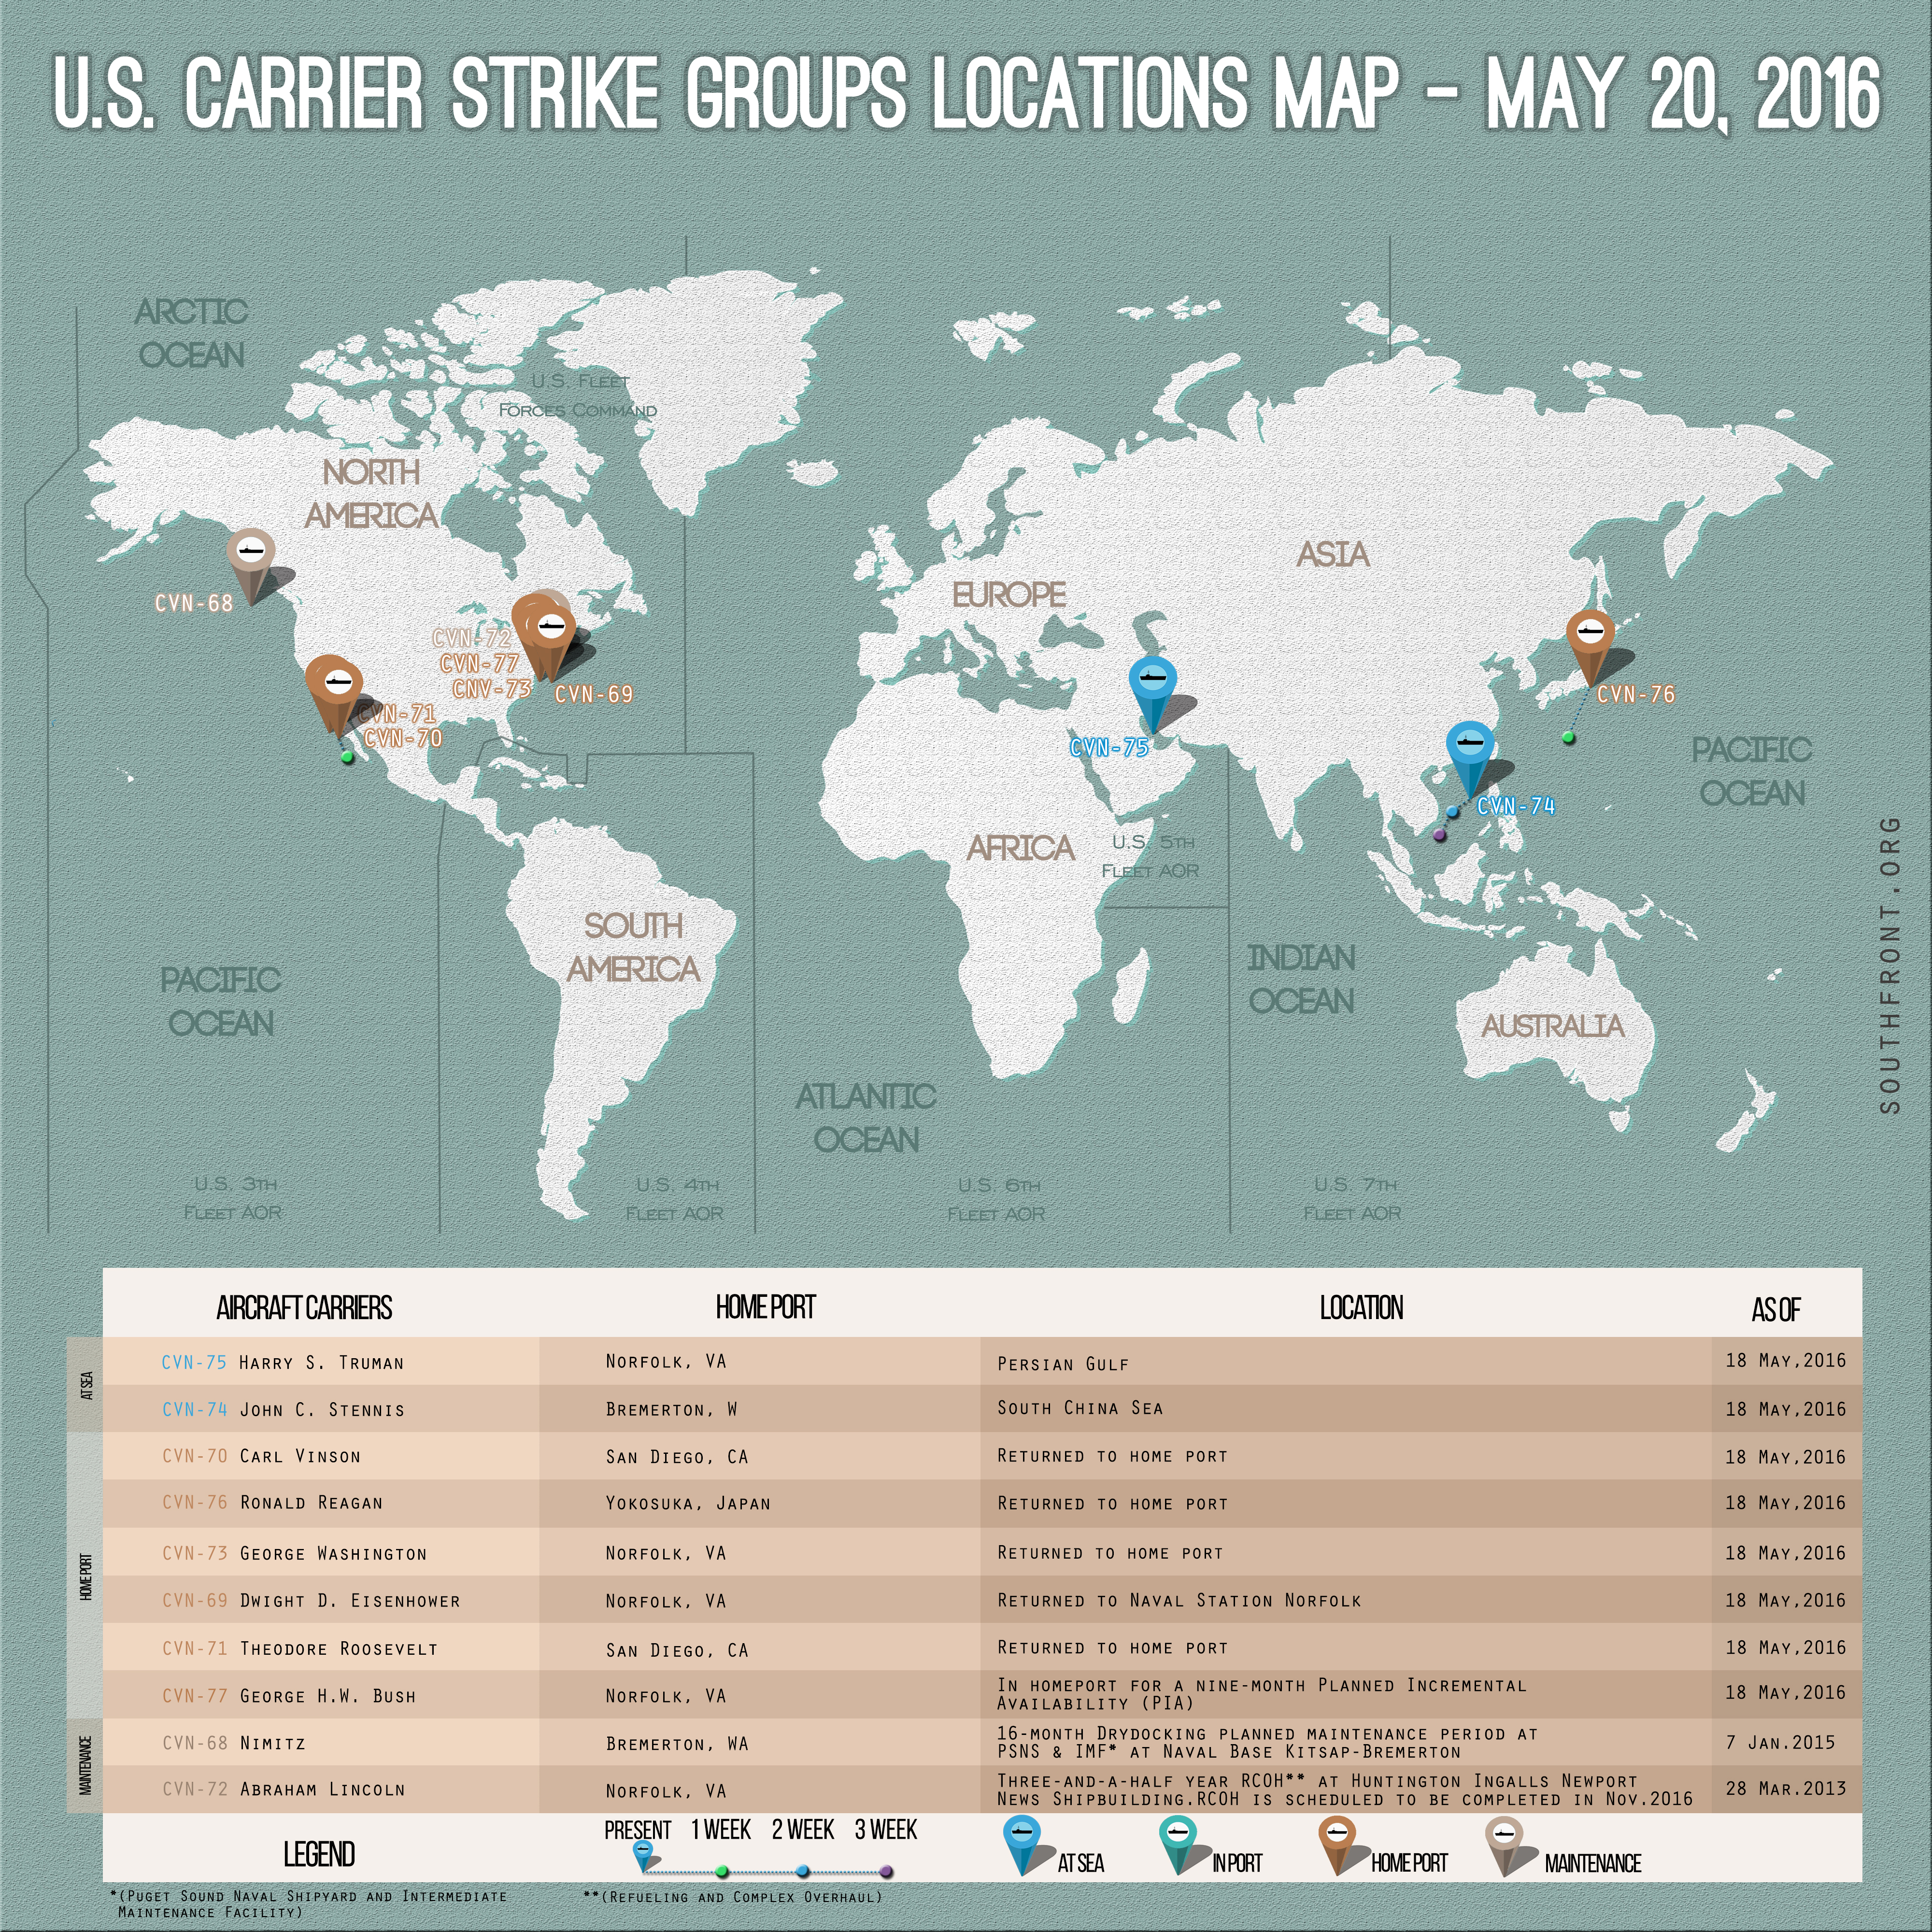 U.S. Carrier Strike Groups Locations Map – May 20, 2016